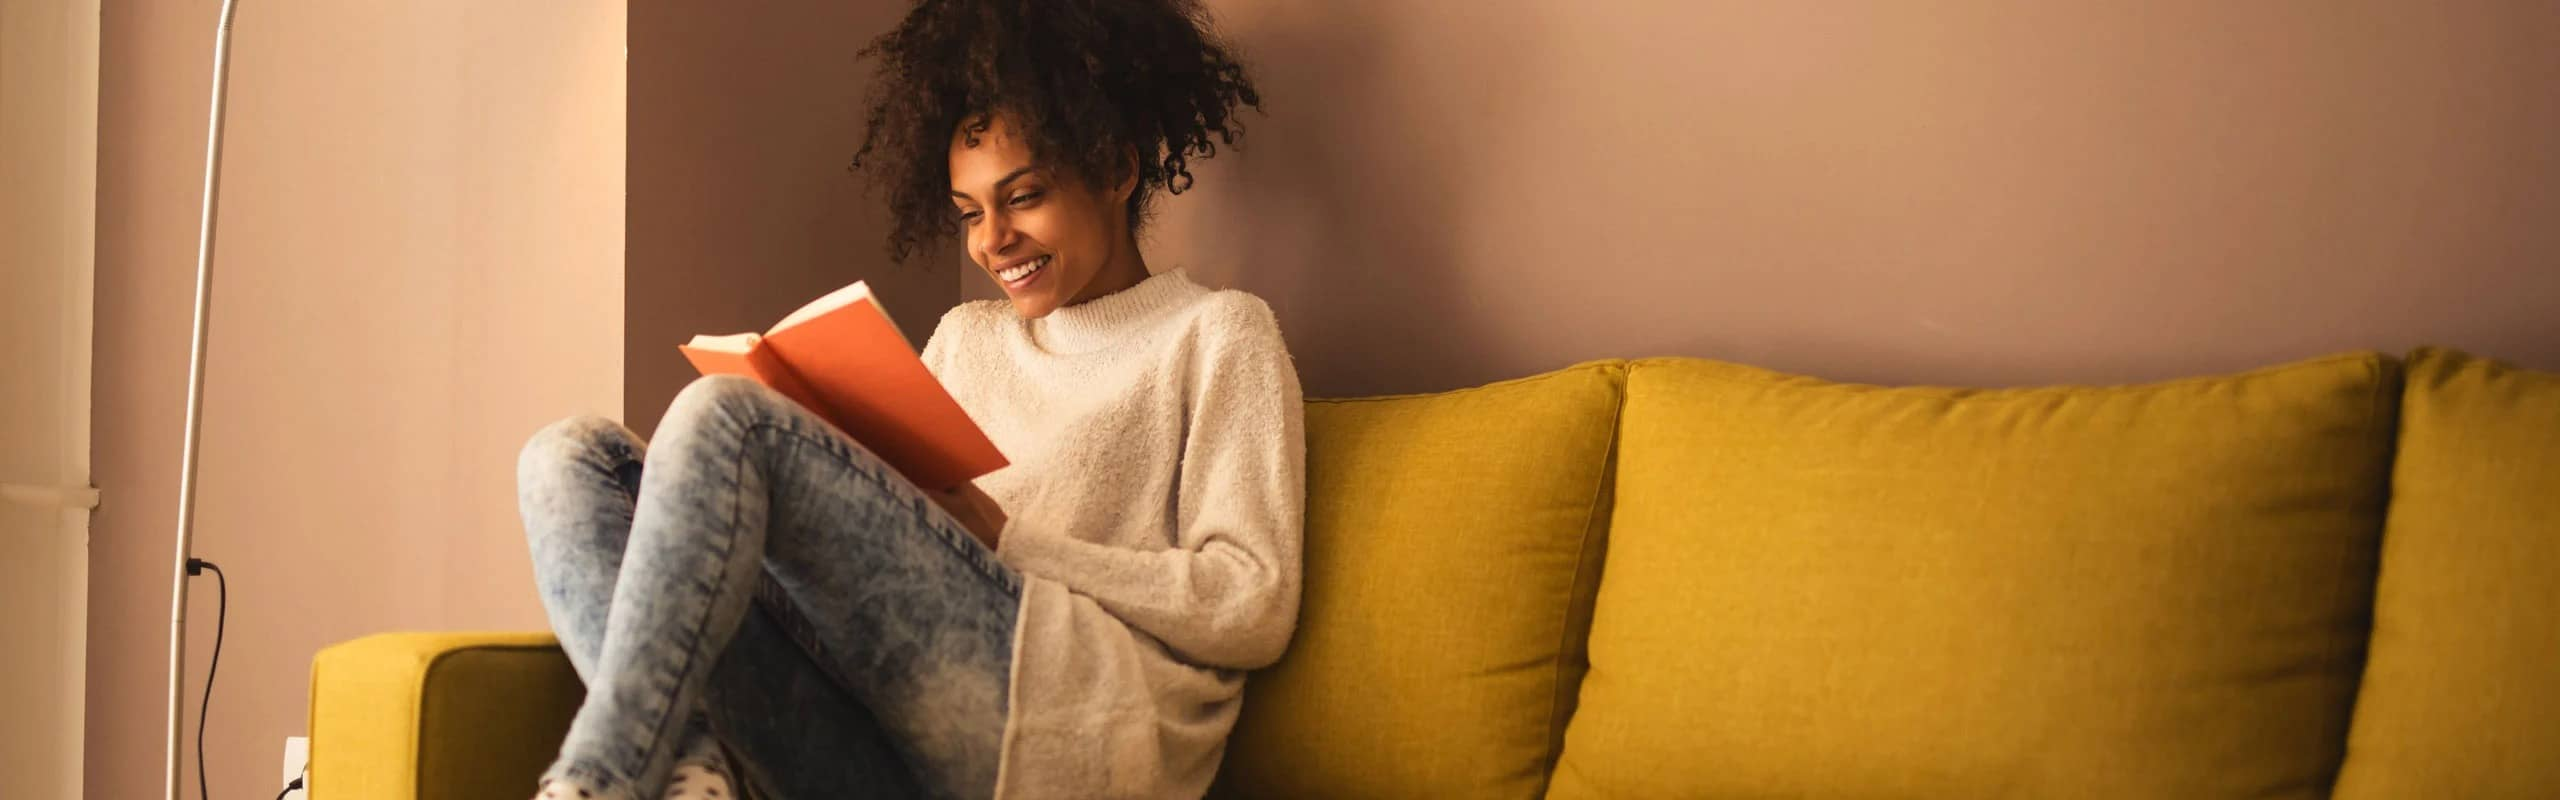 woman-reading-on-couch